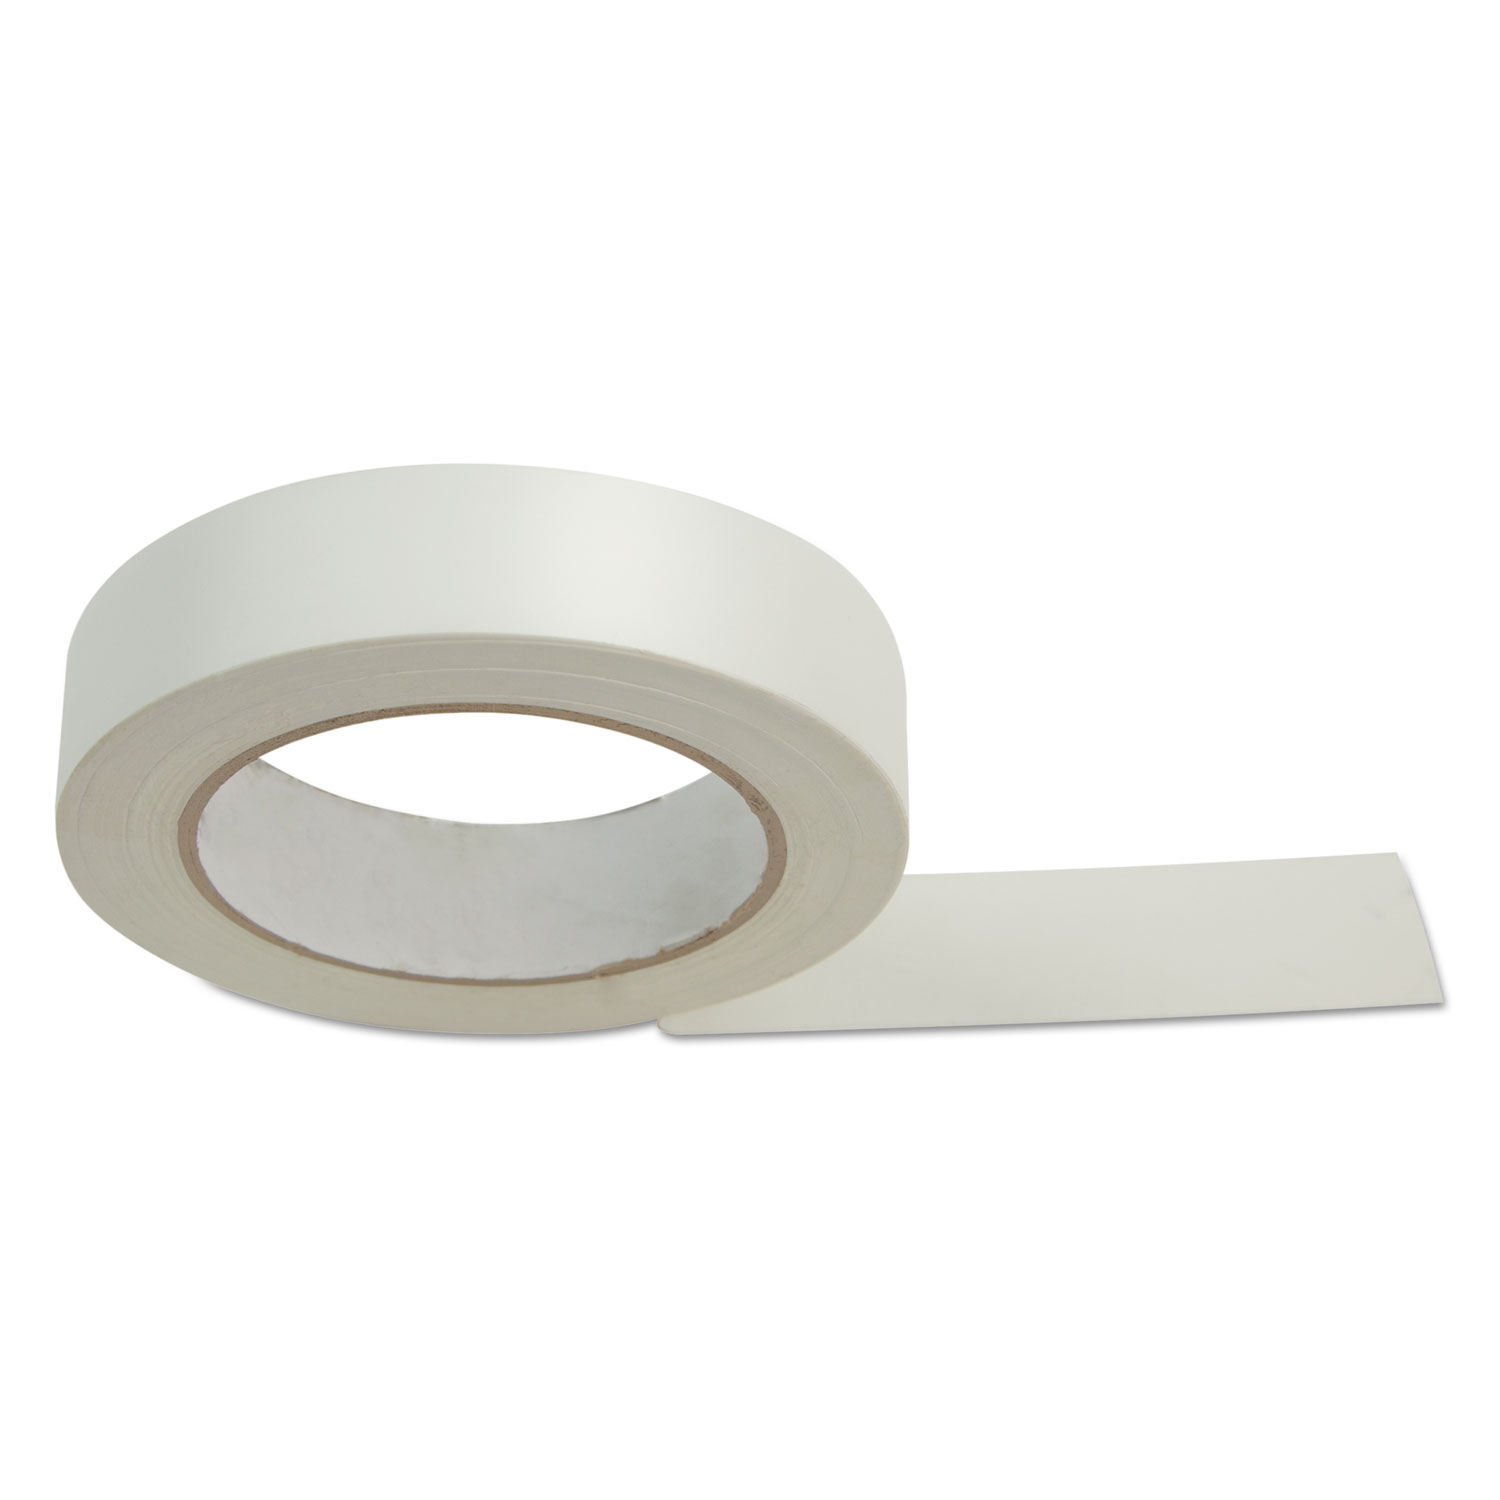 Csi1x36ftwh Champion Sports Floor Tape Zuma